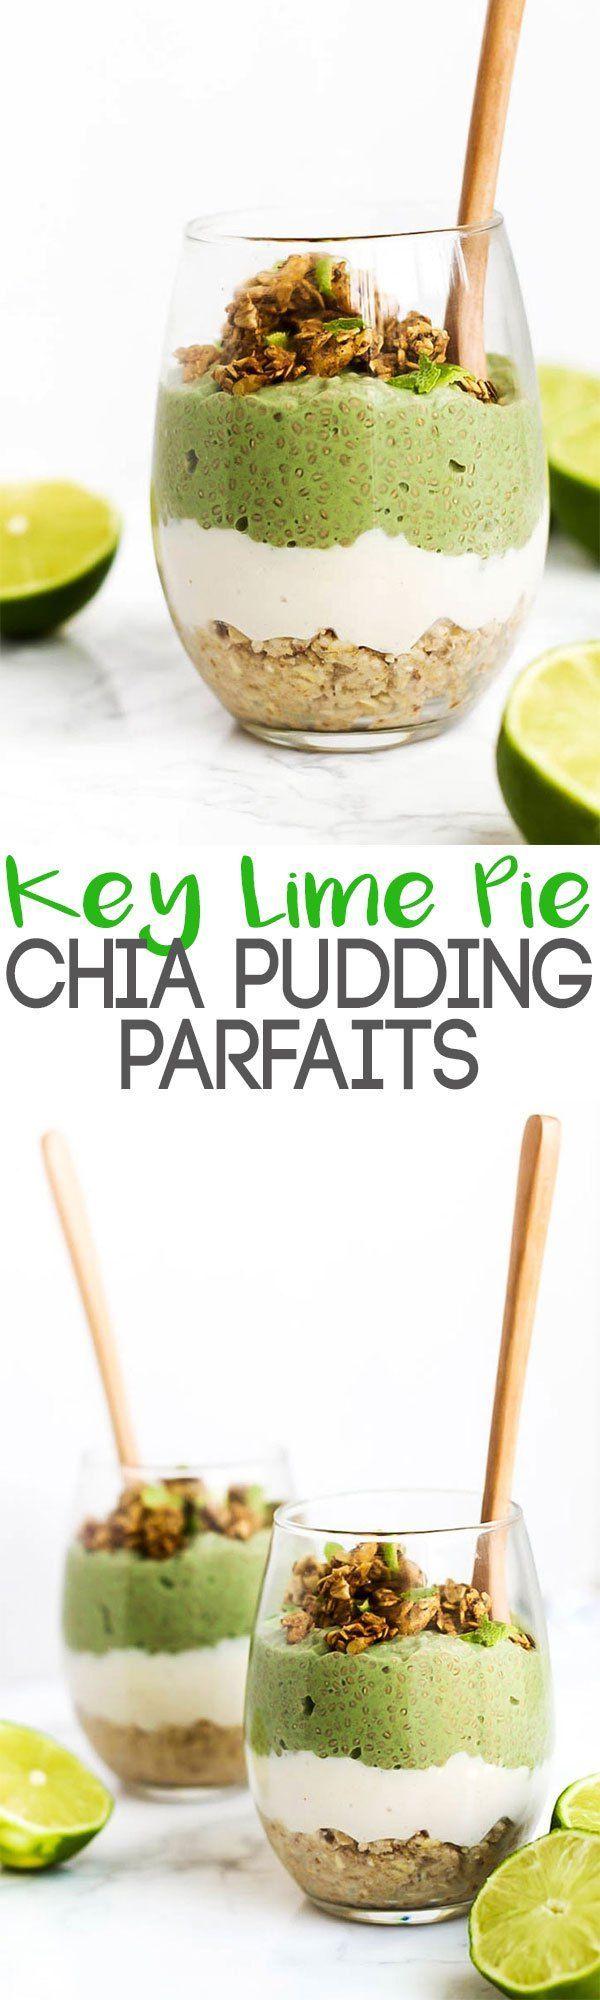 One bite into the layers of these Key Lime Pie Chia Pudding Parfaits will have you thinking you're enjoying dessert for breakfast! Vegan & gluten-free.